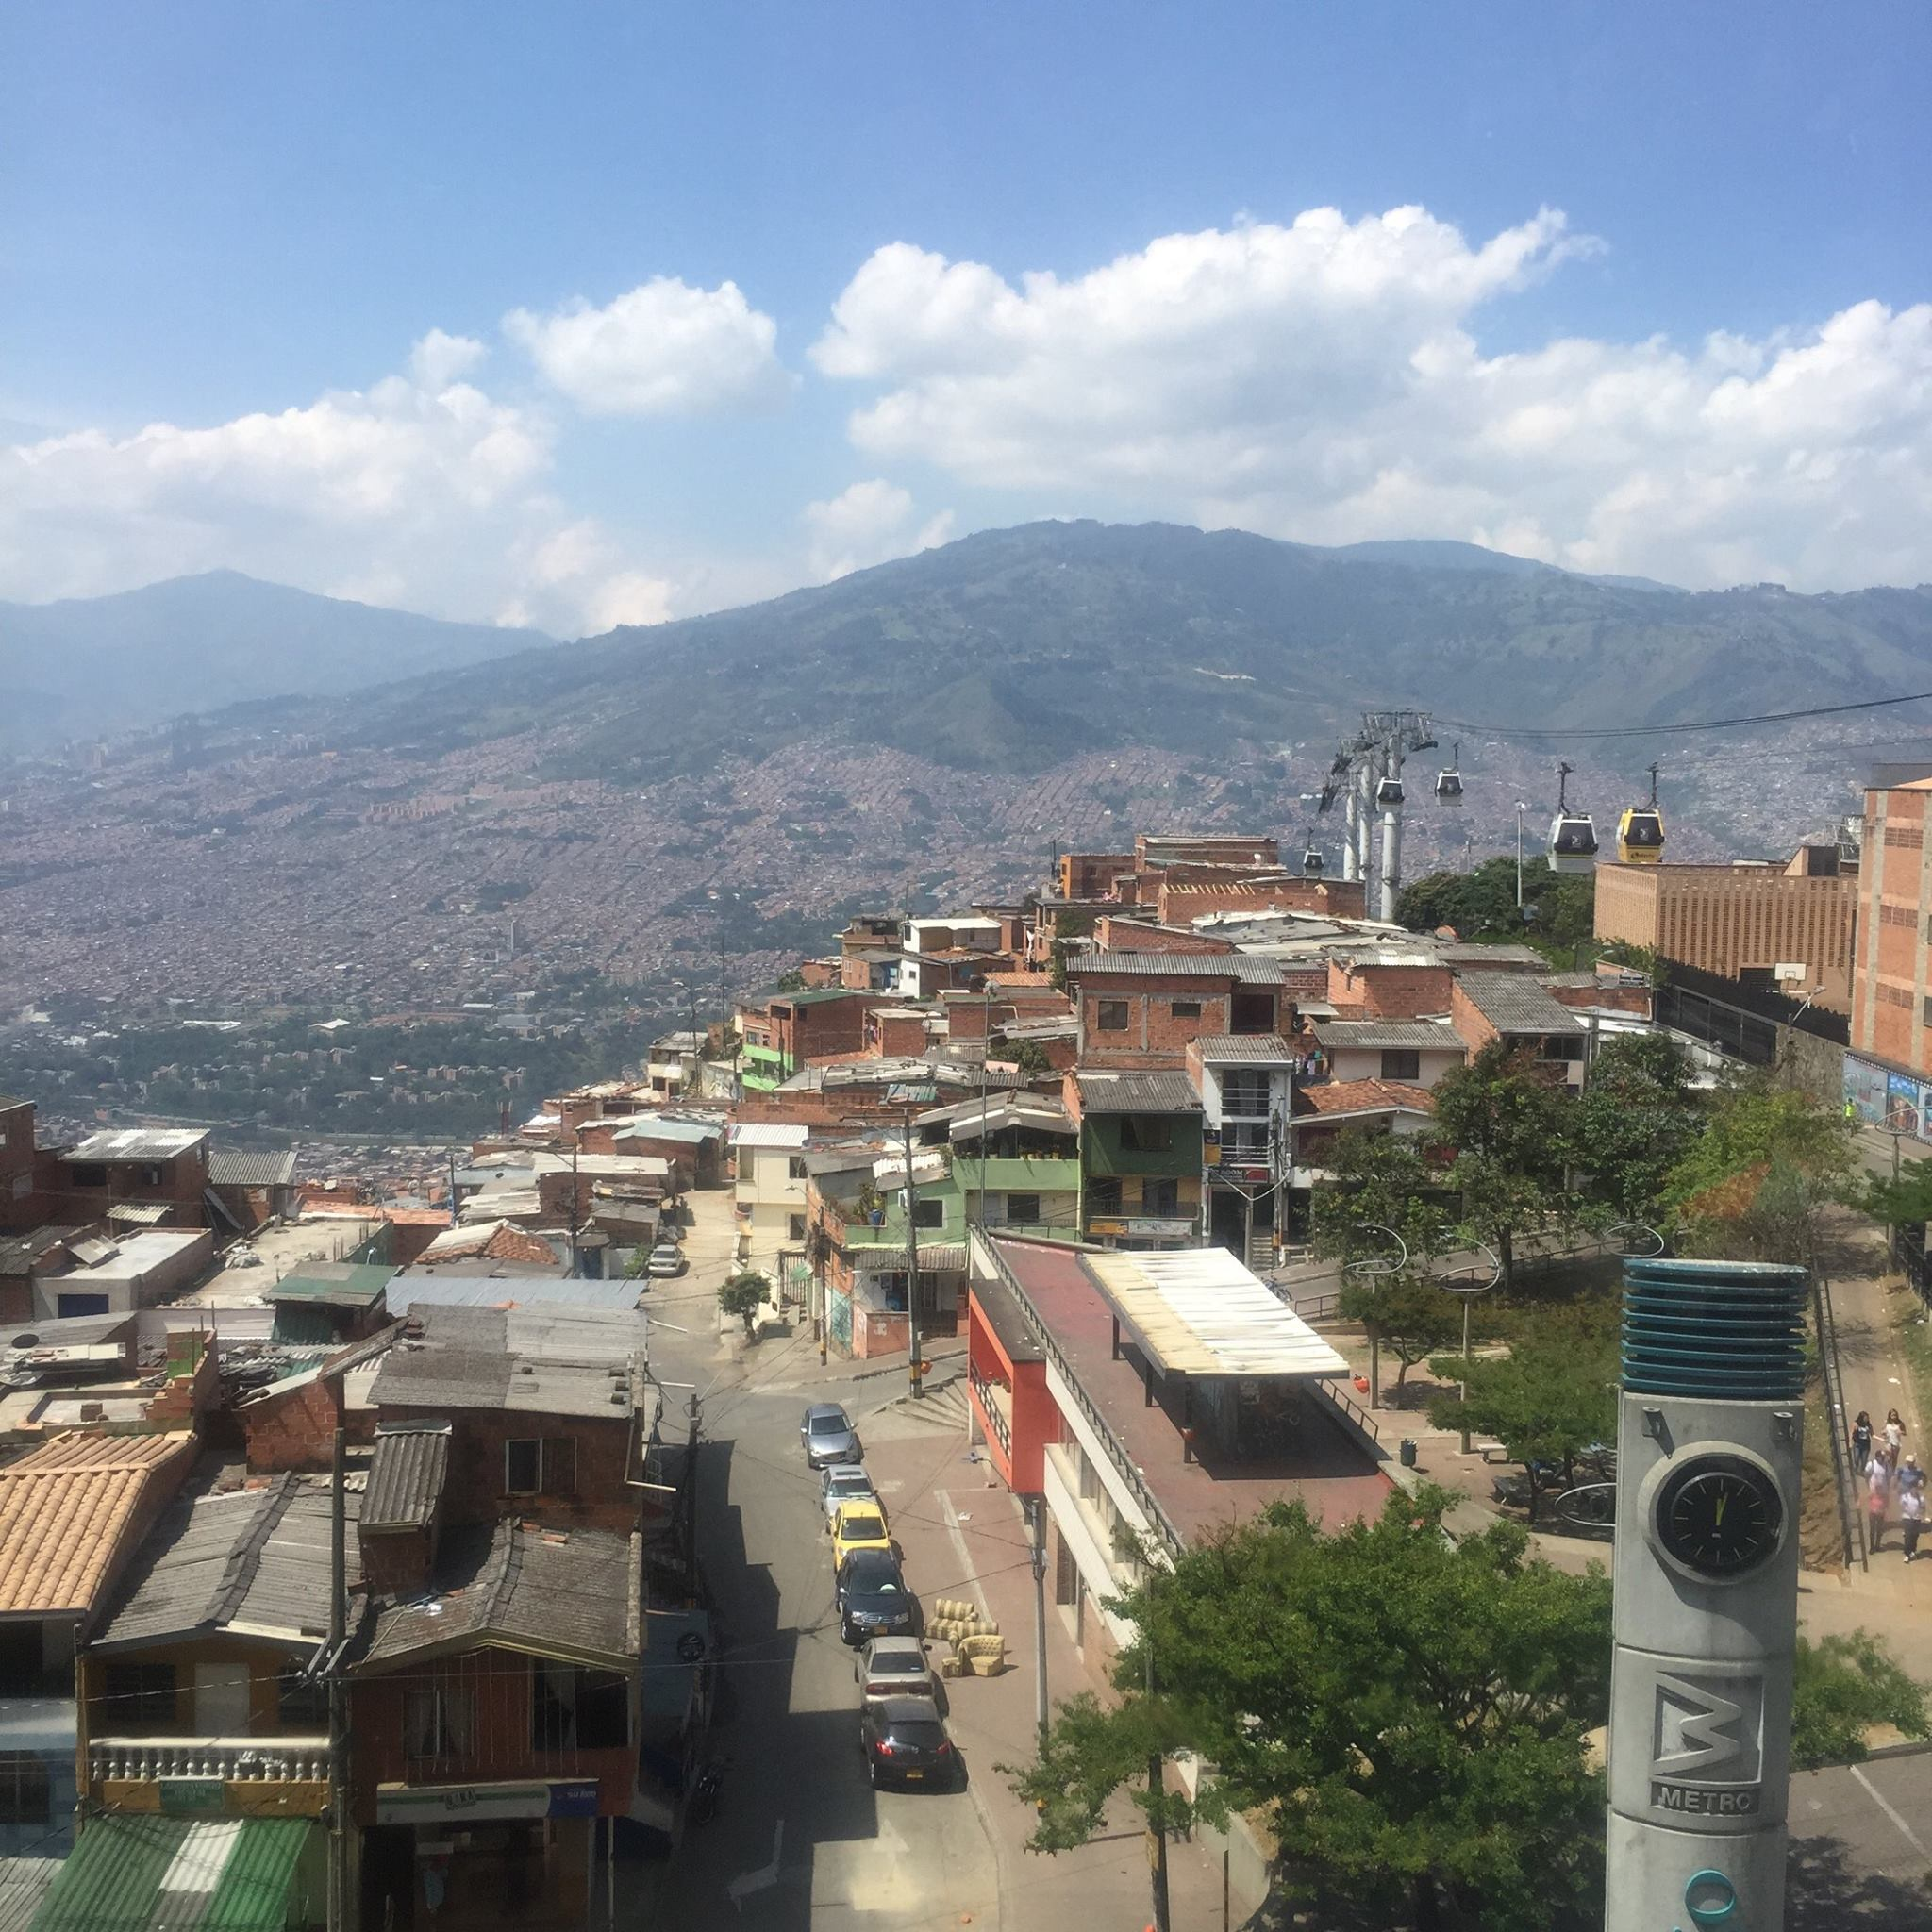 The view from the cable car (teleférico) on the way to Parque Arví (more below).